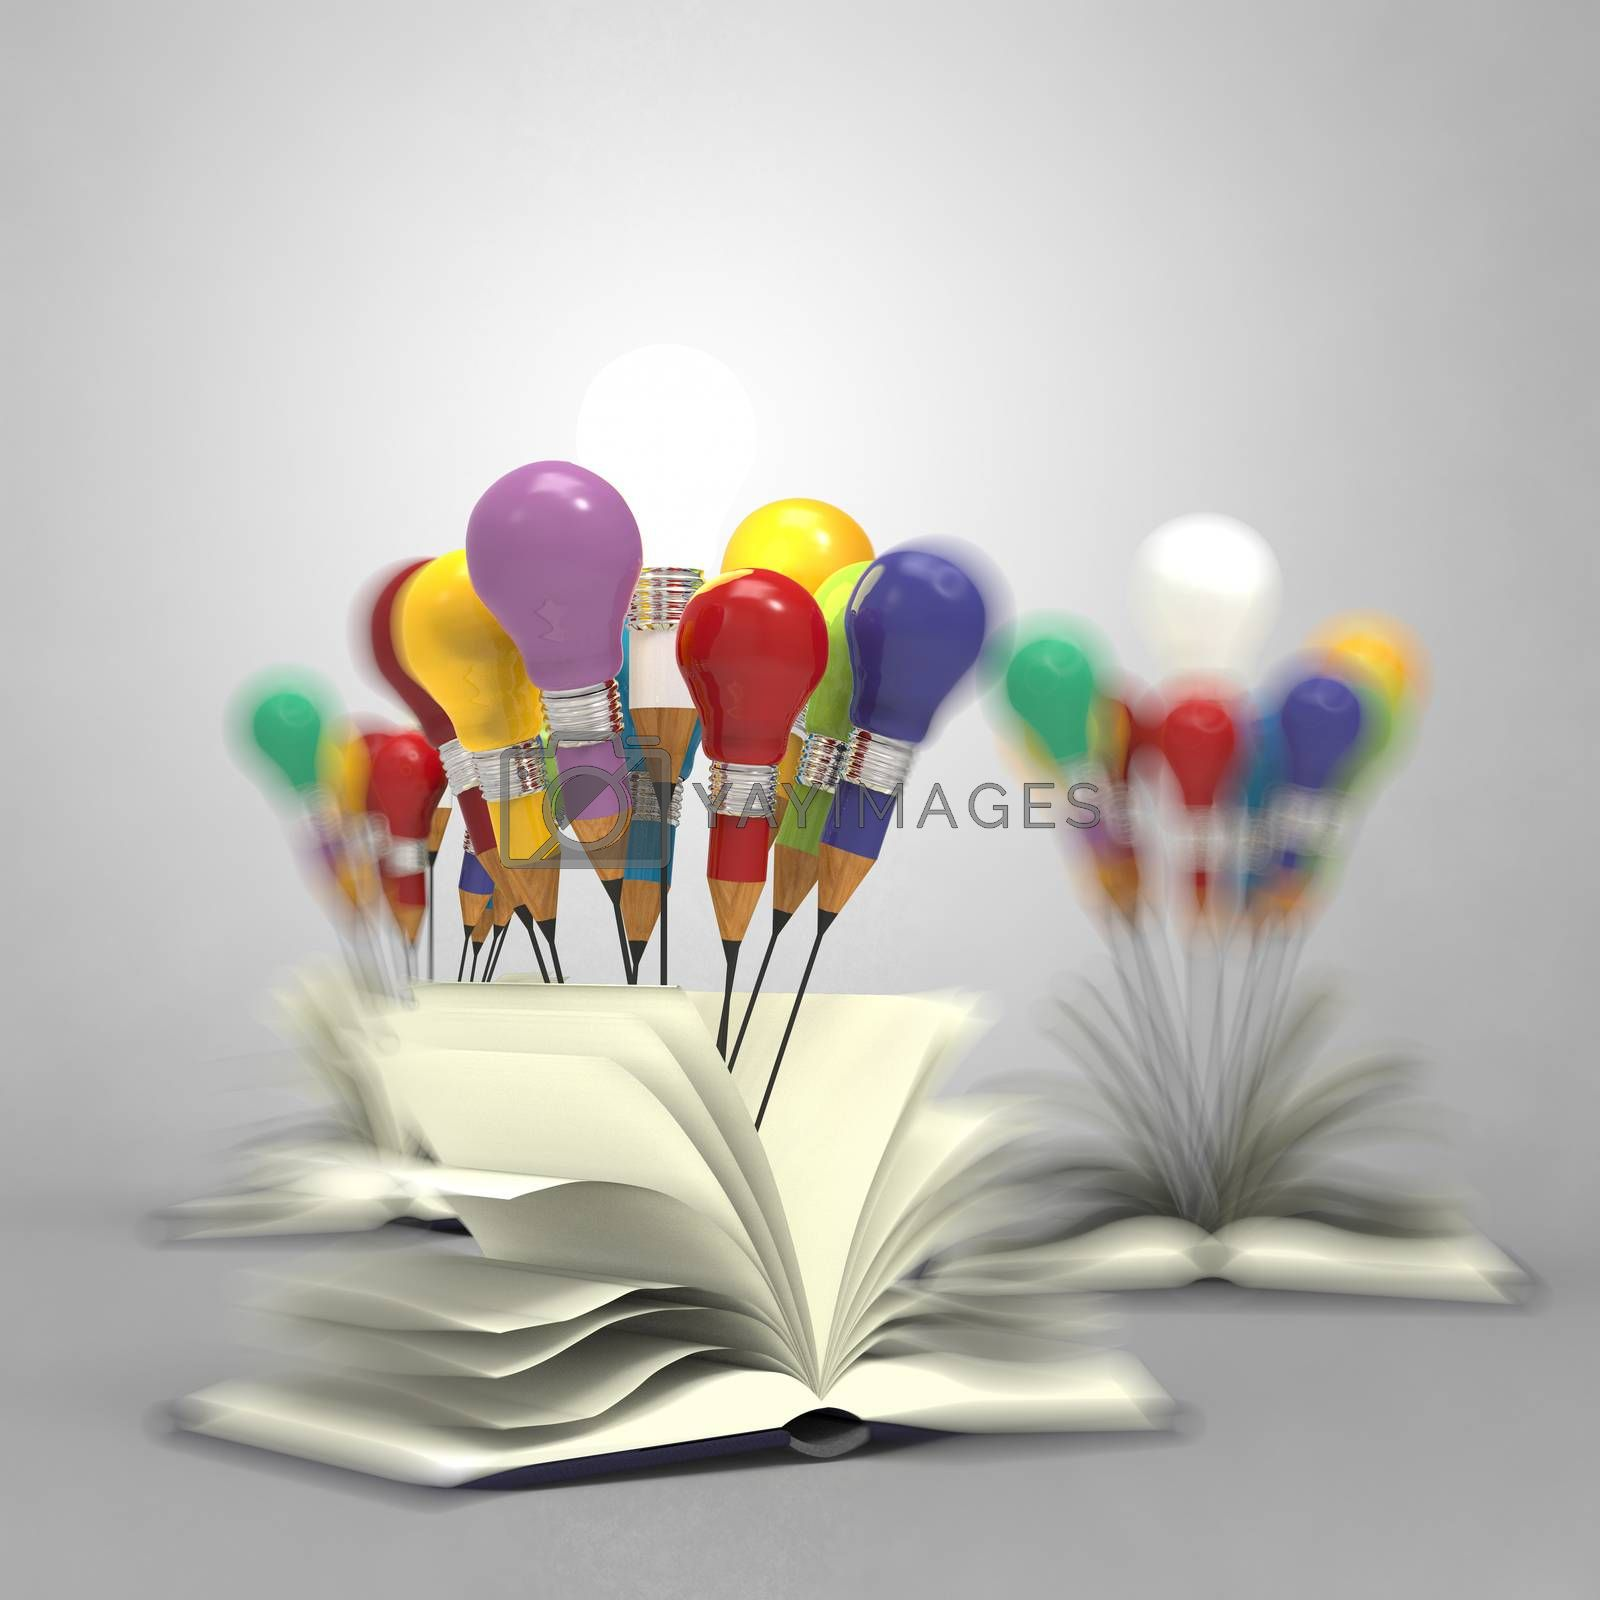 Royalty free image of drawing idea pencil and light bulb concept outside the book  by everythingpossible